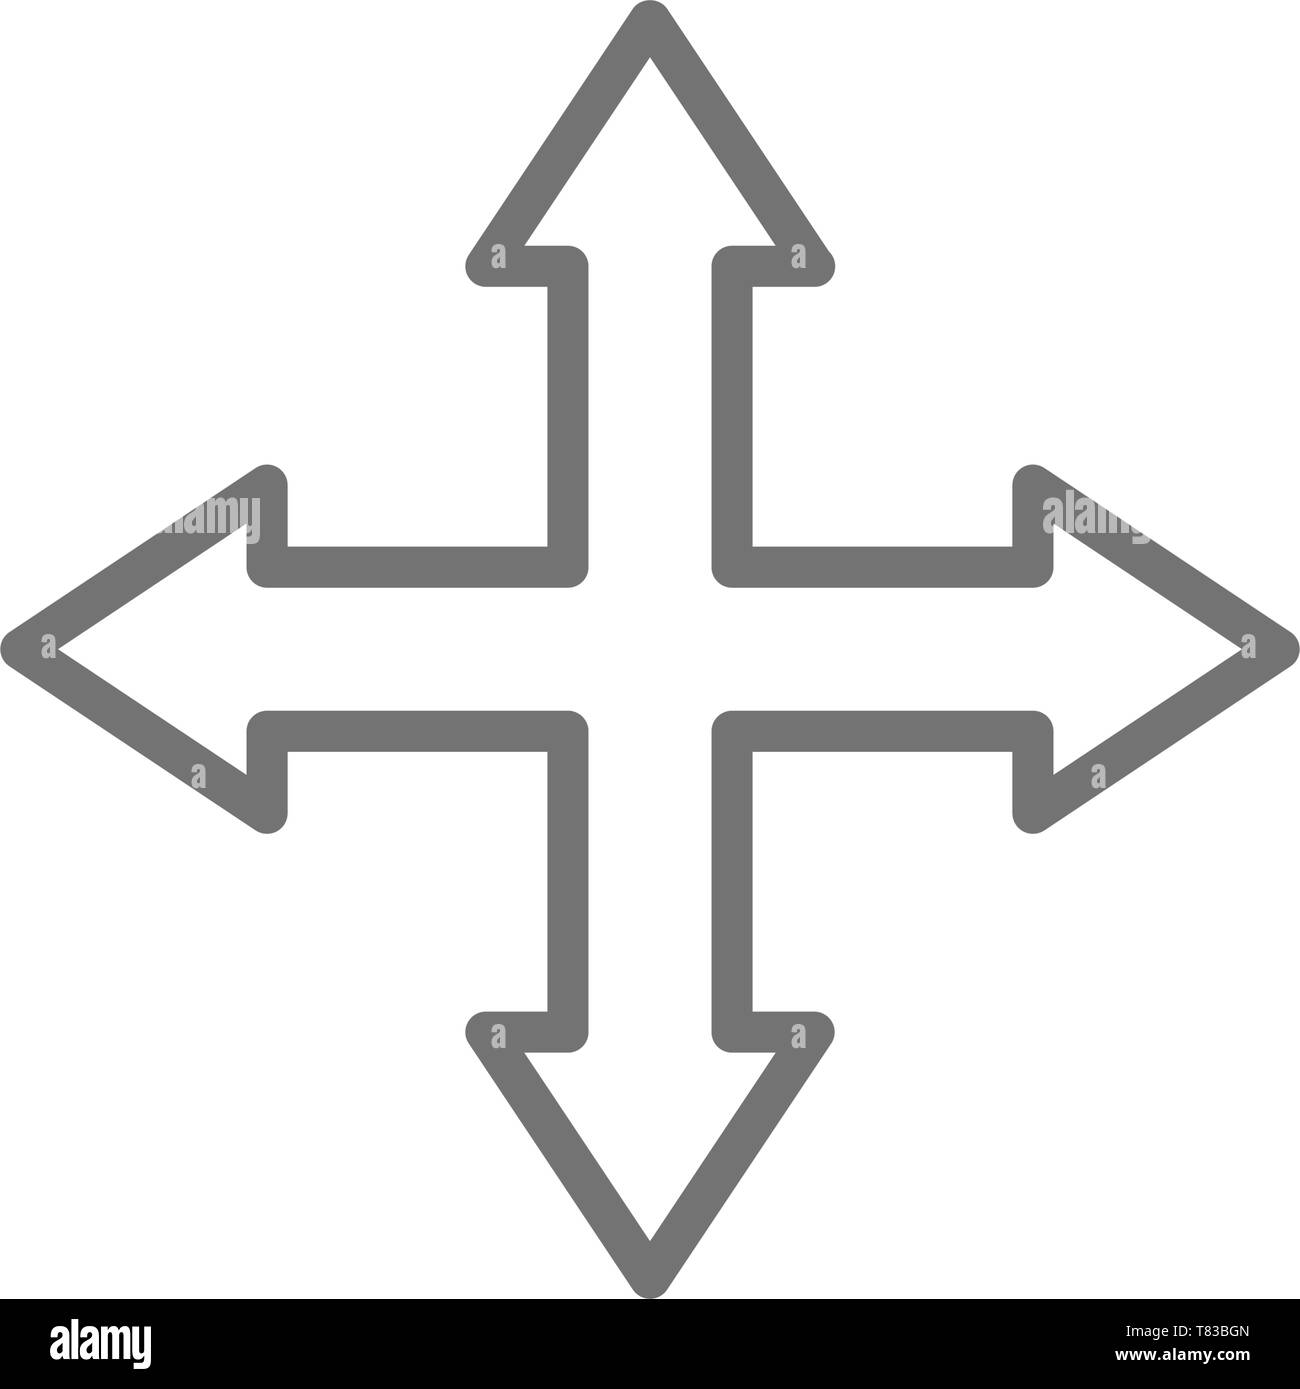 Arrows pointing in different directions, four way, navigation line icon. - Stock Image